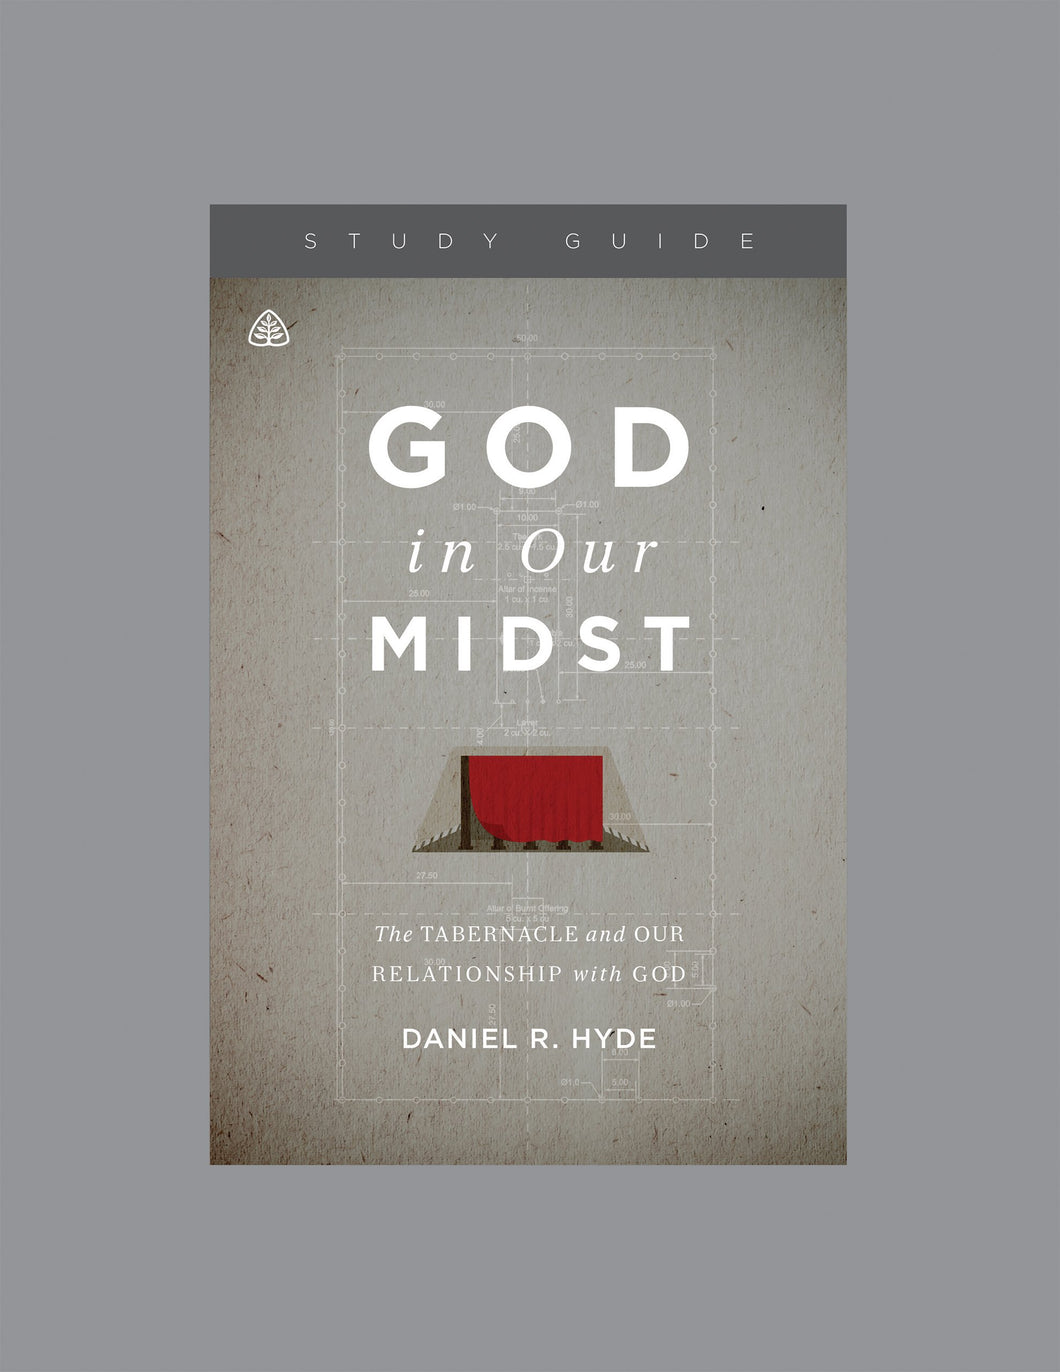 God in Our Midst: The Tabernacle and Our Relationship with God — Download Study Guide PDF (1 License)